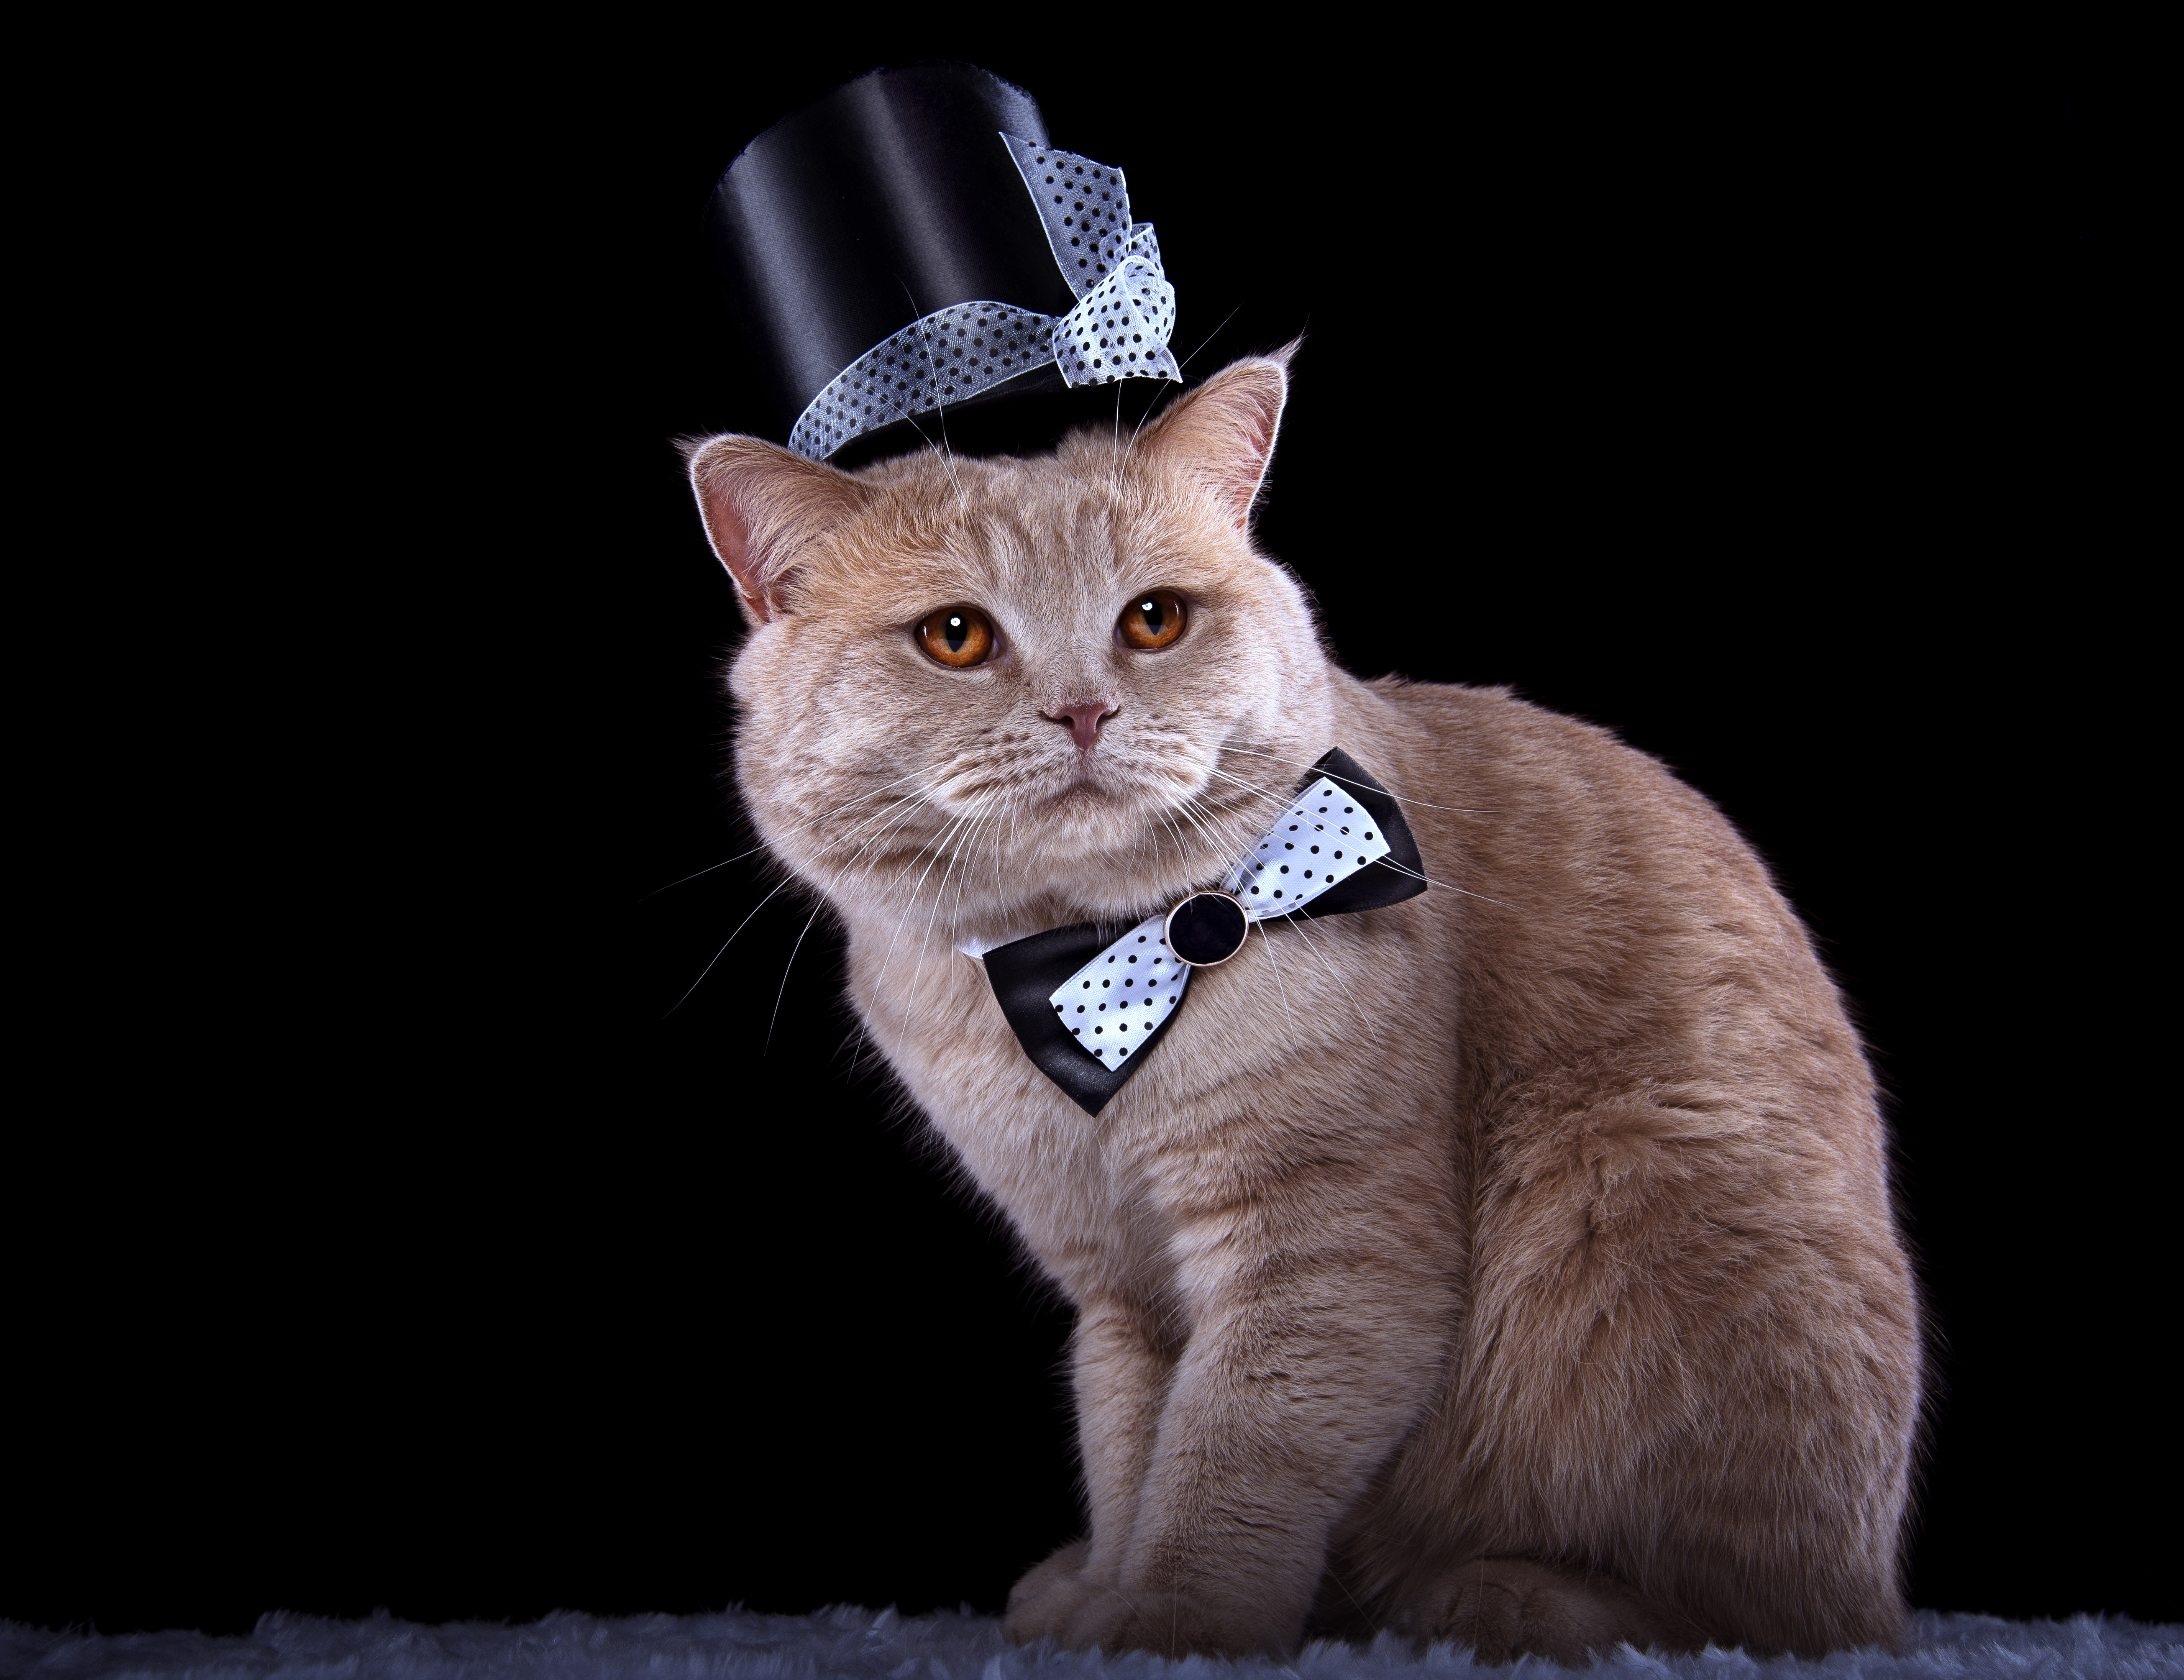 Photos cat Hat Bow tie Animals Staring Black background Cats Glance animal